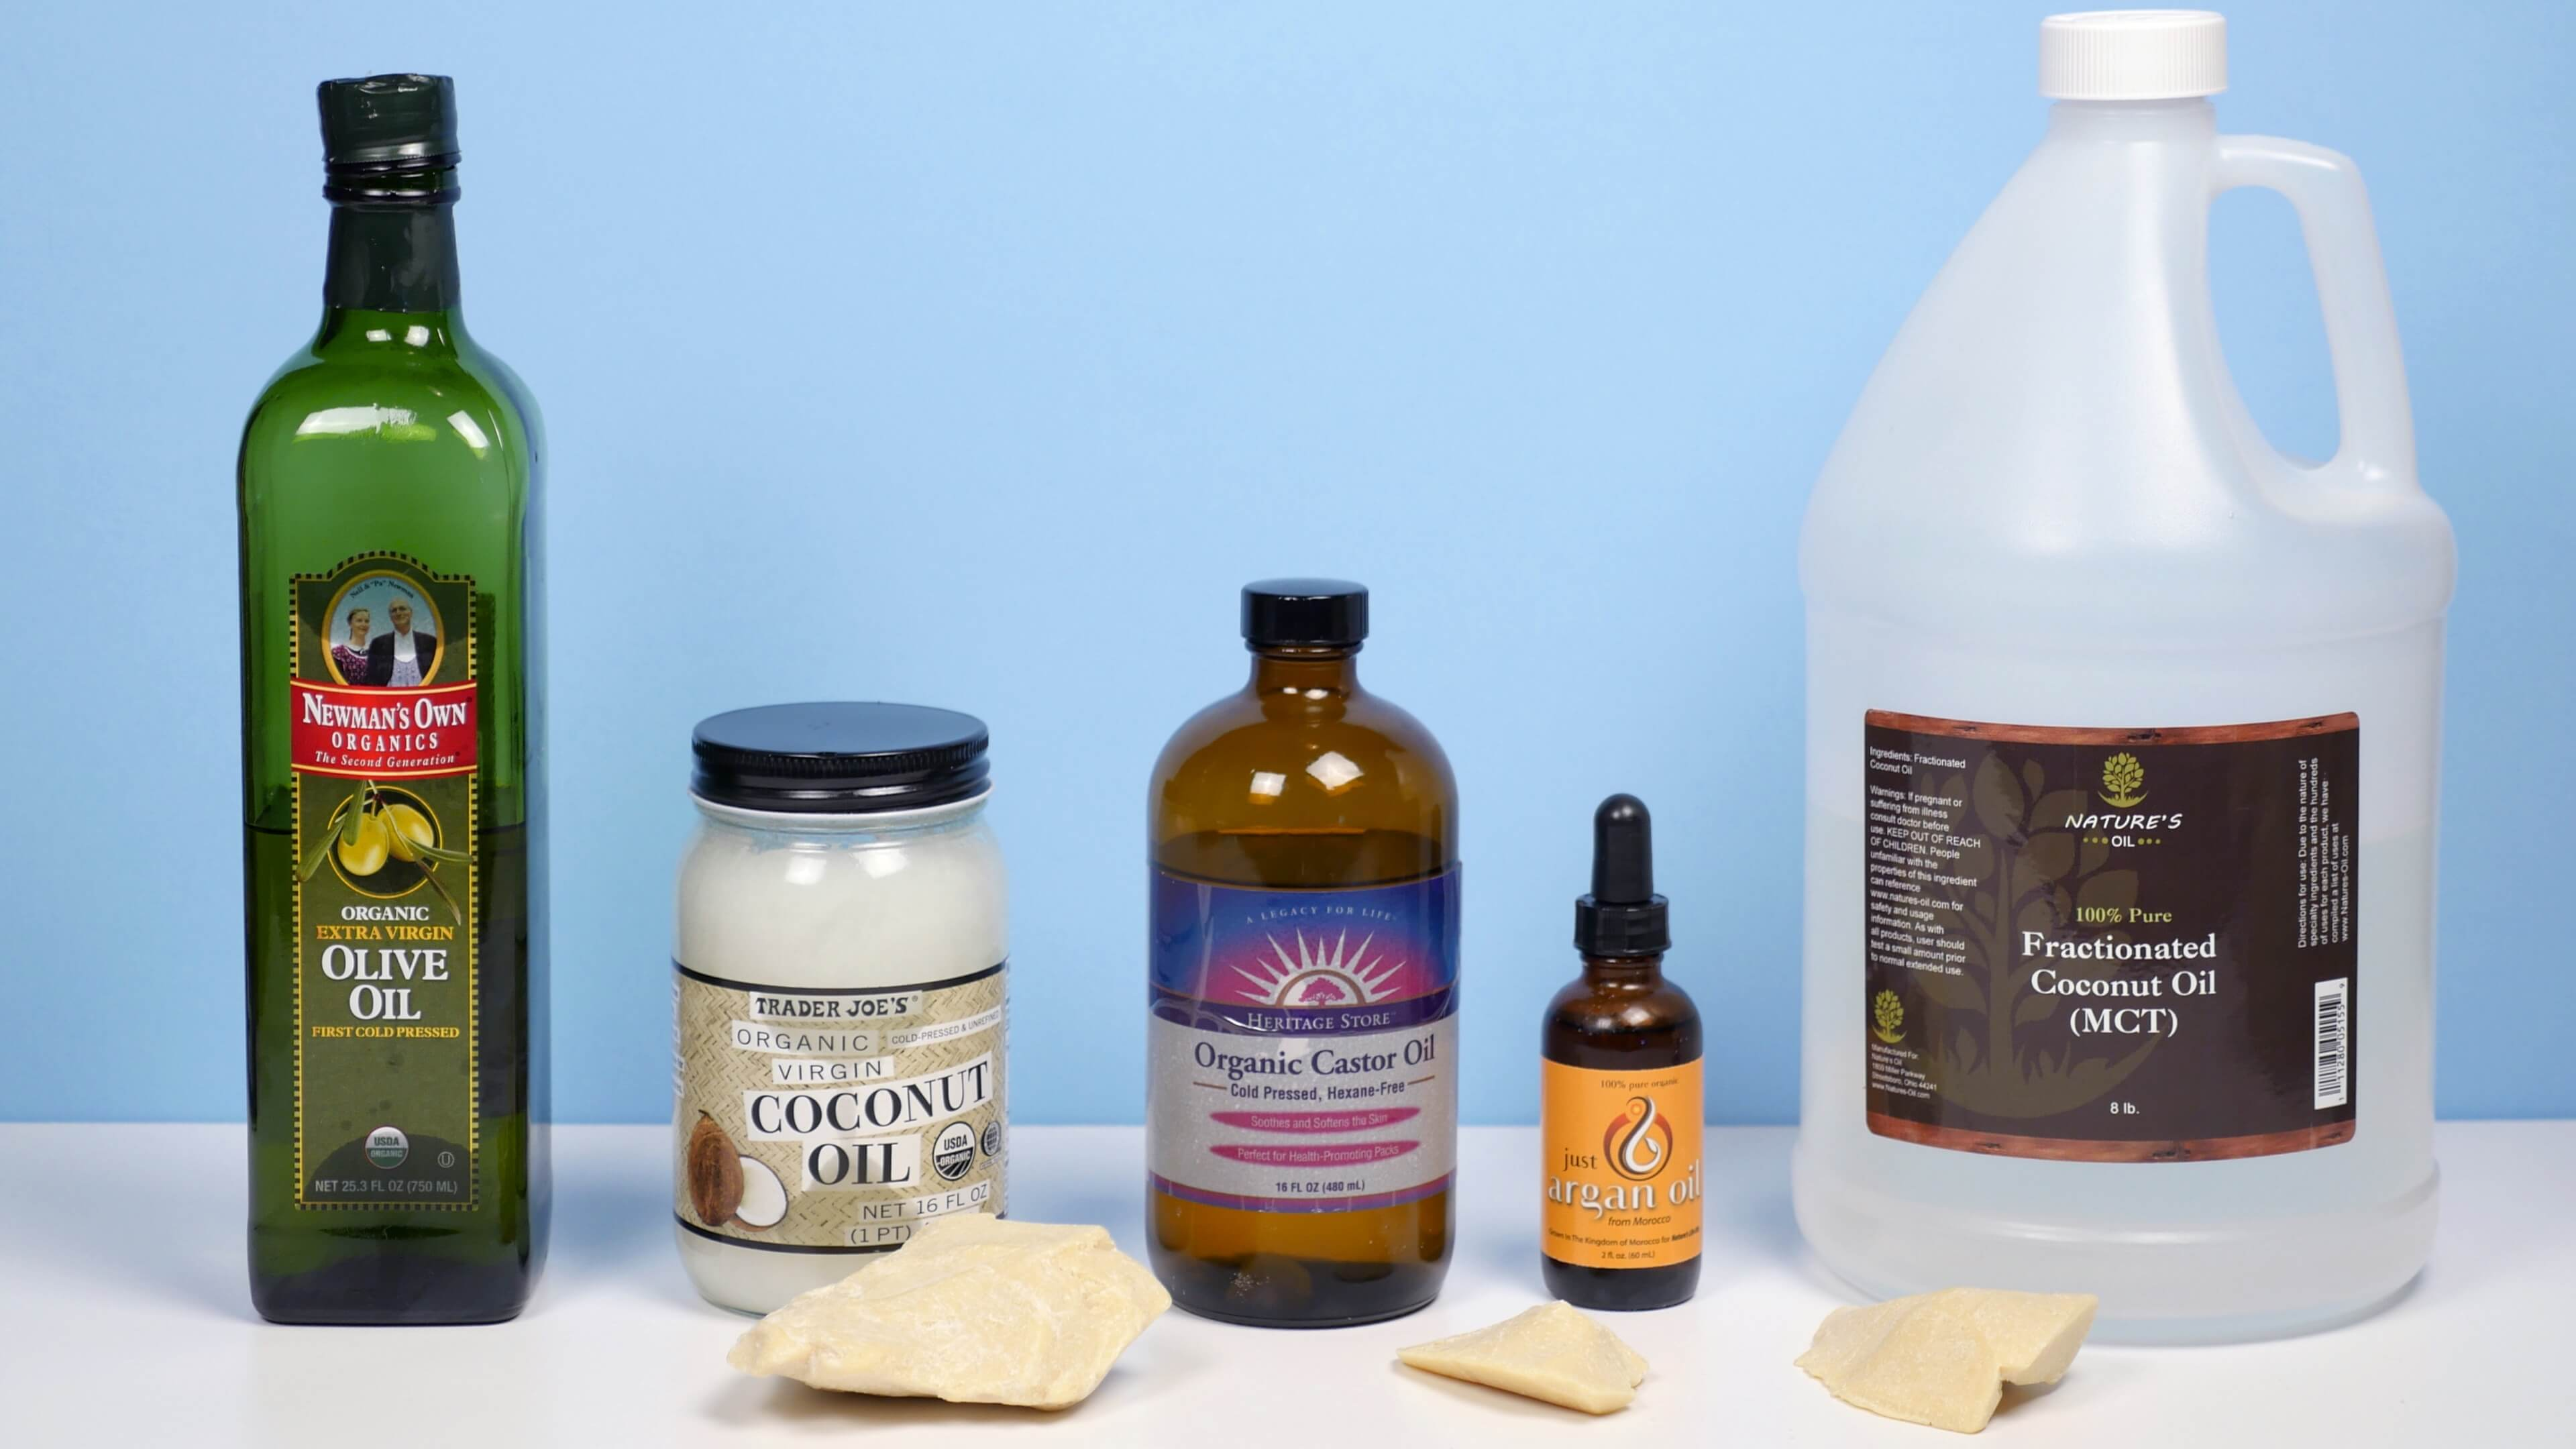 Wondering what carrier oil to use? Check out this list of options for carrier oils, butter and specialty oils, plus the best ways to use them.